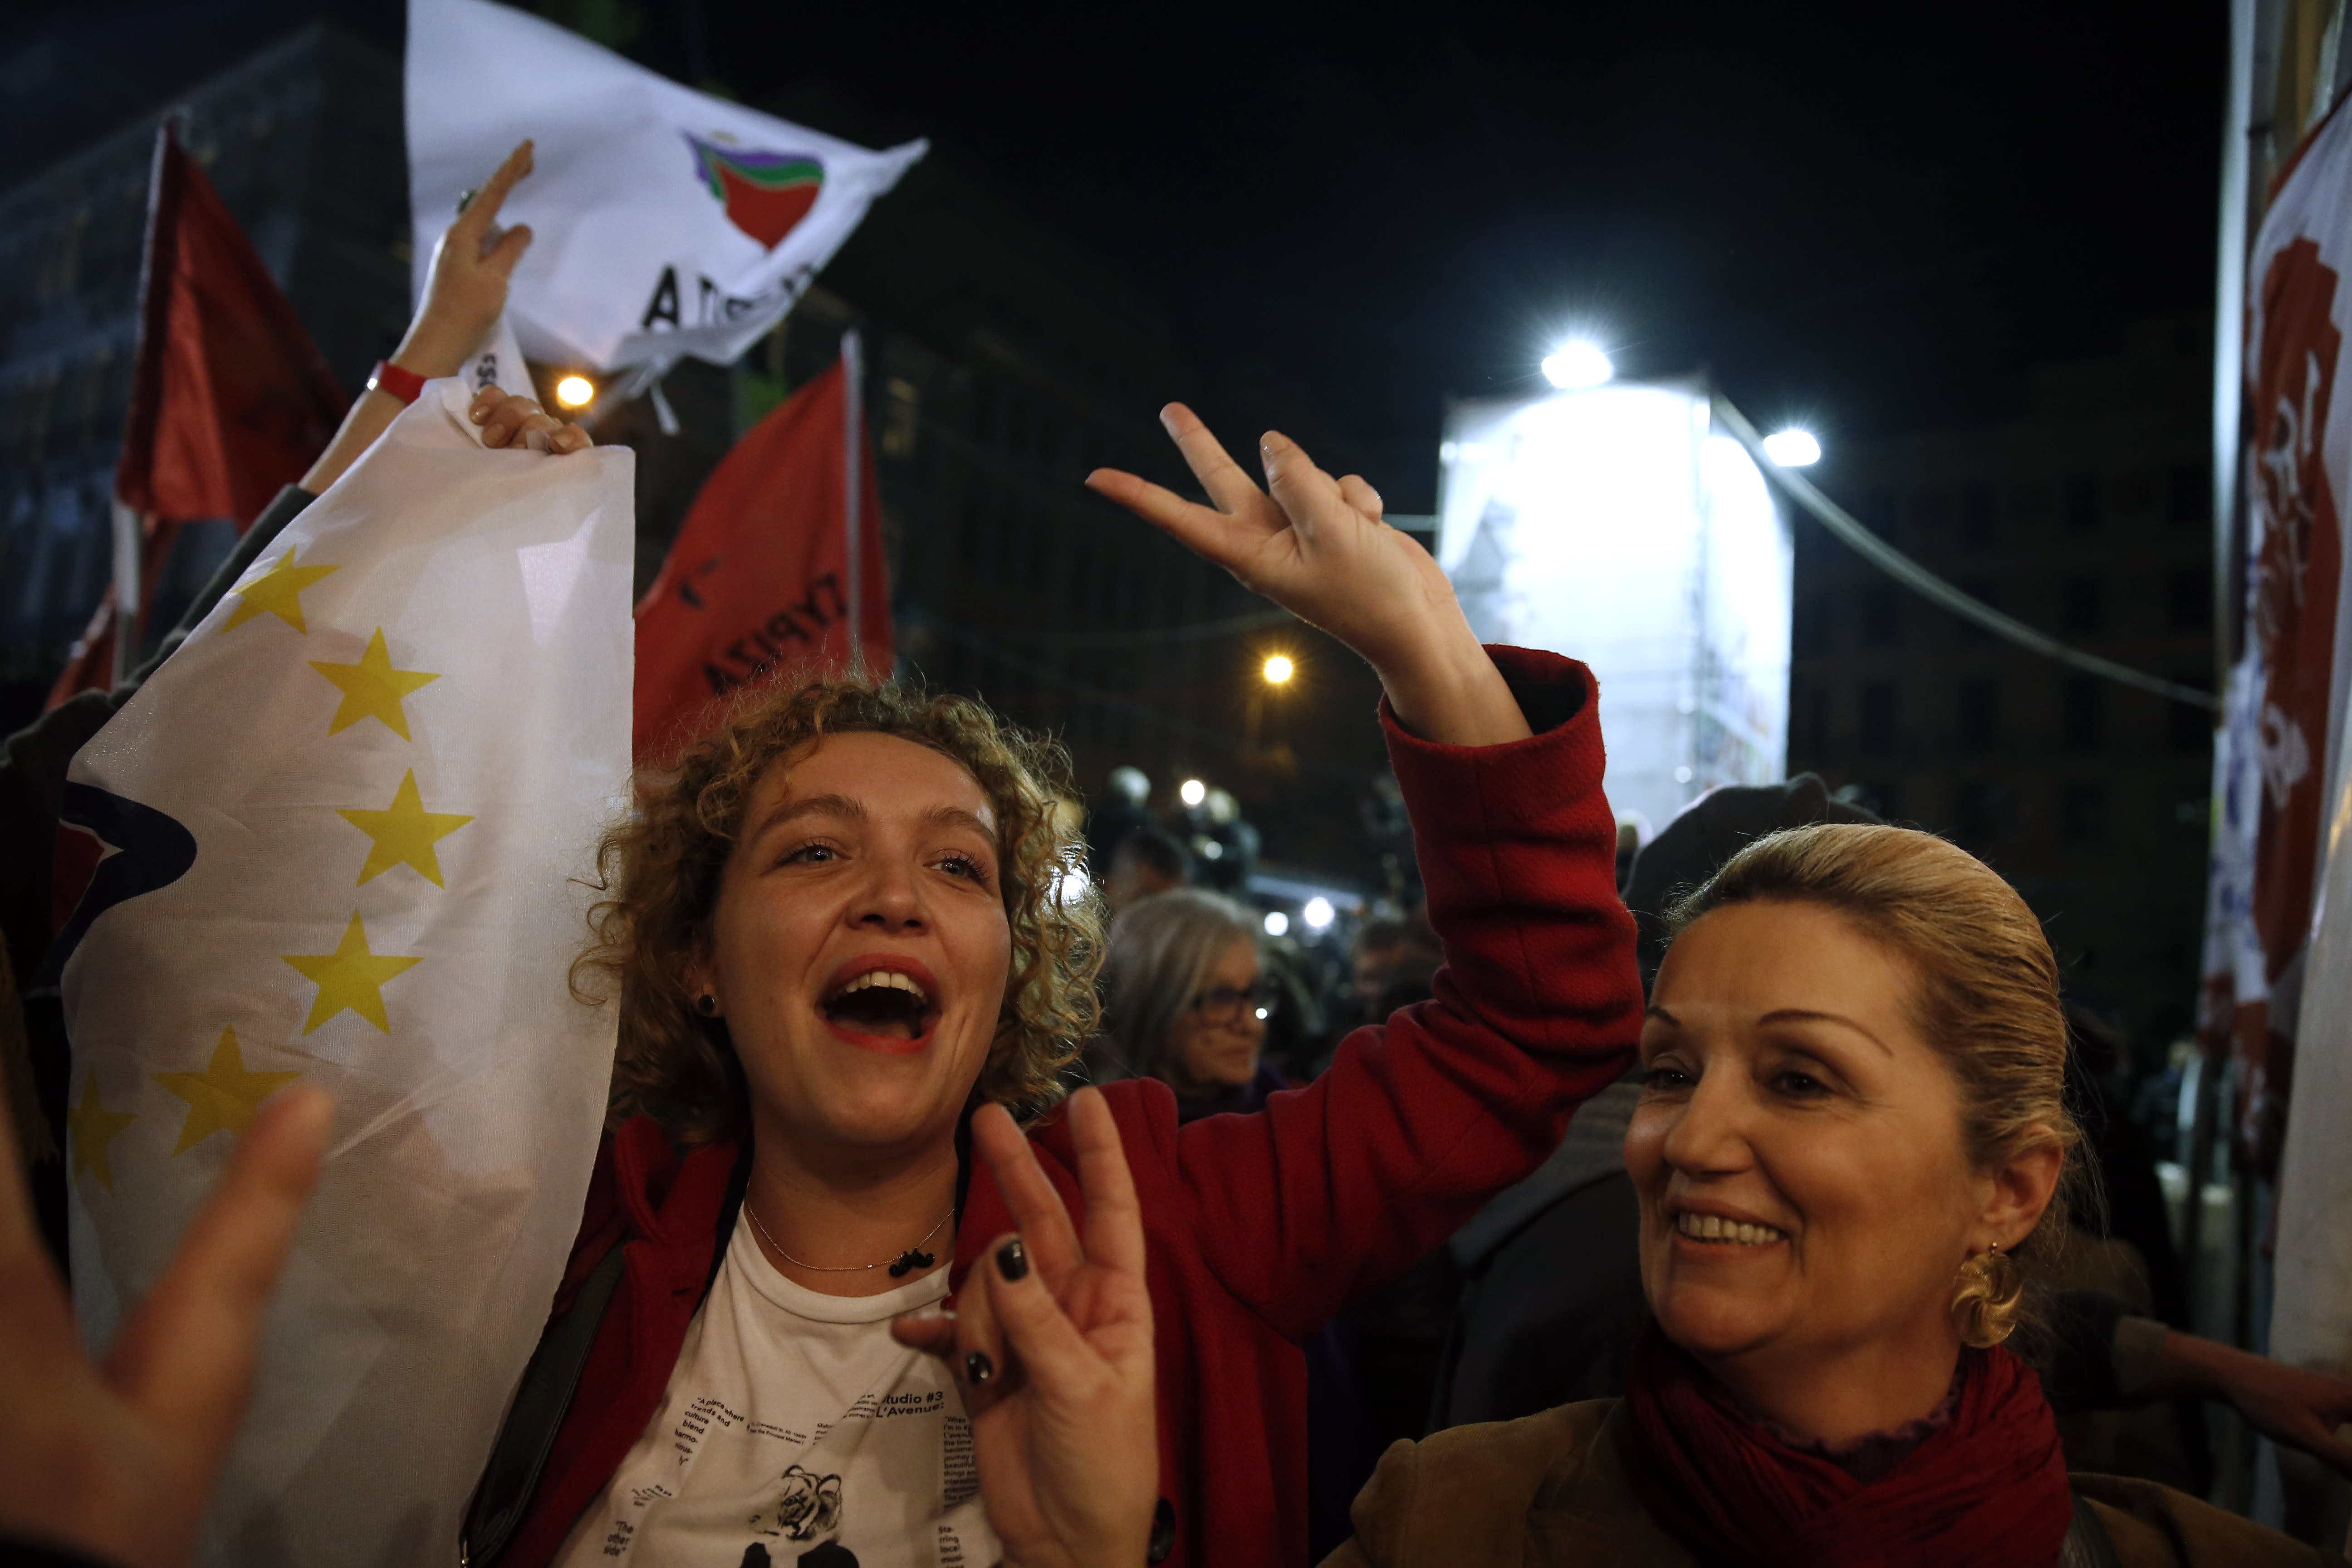 Exit poll: Greece's anti-bailout Syriza party wins election